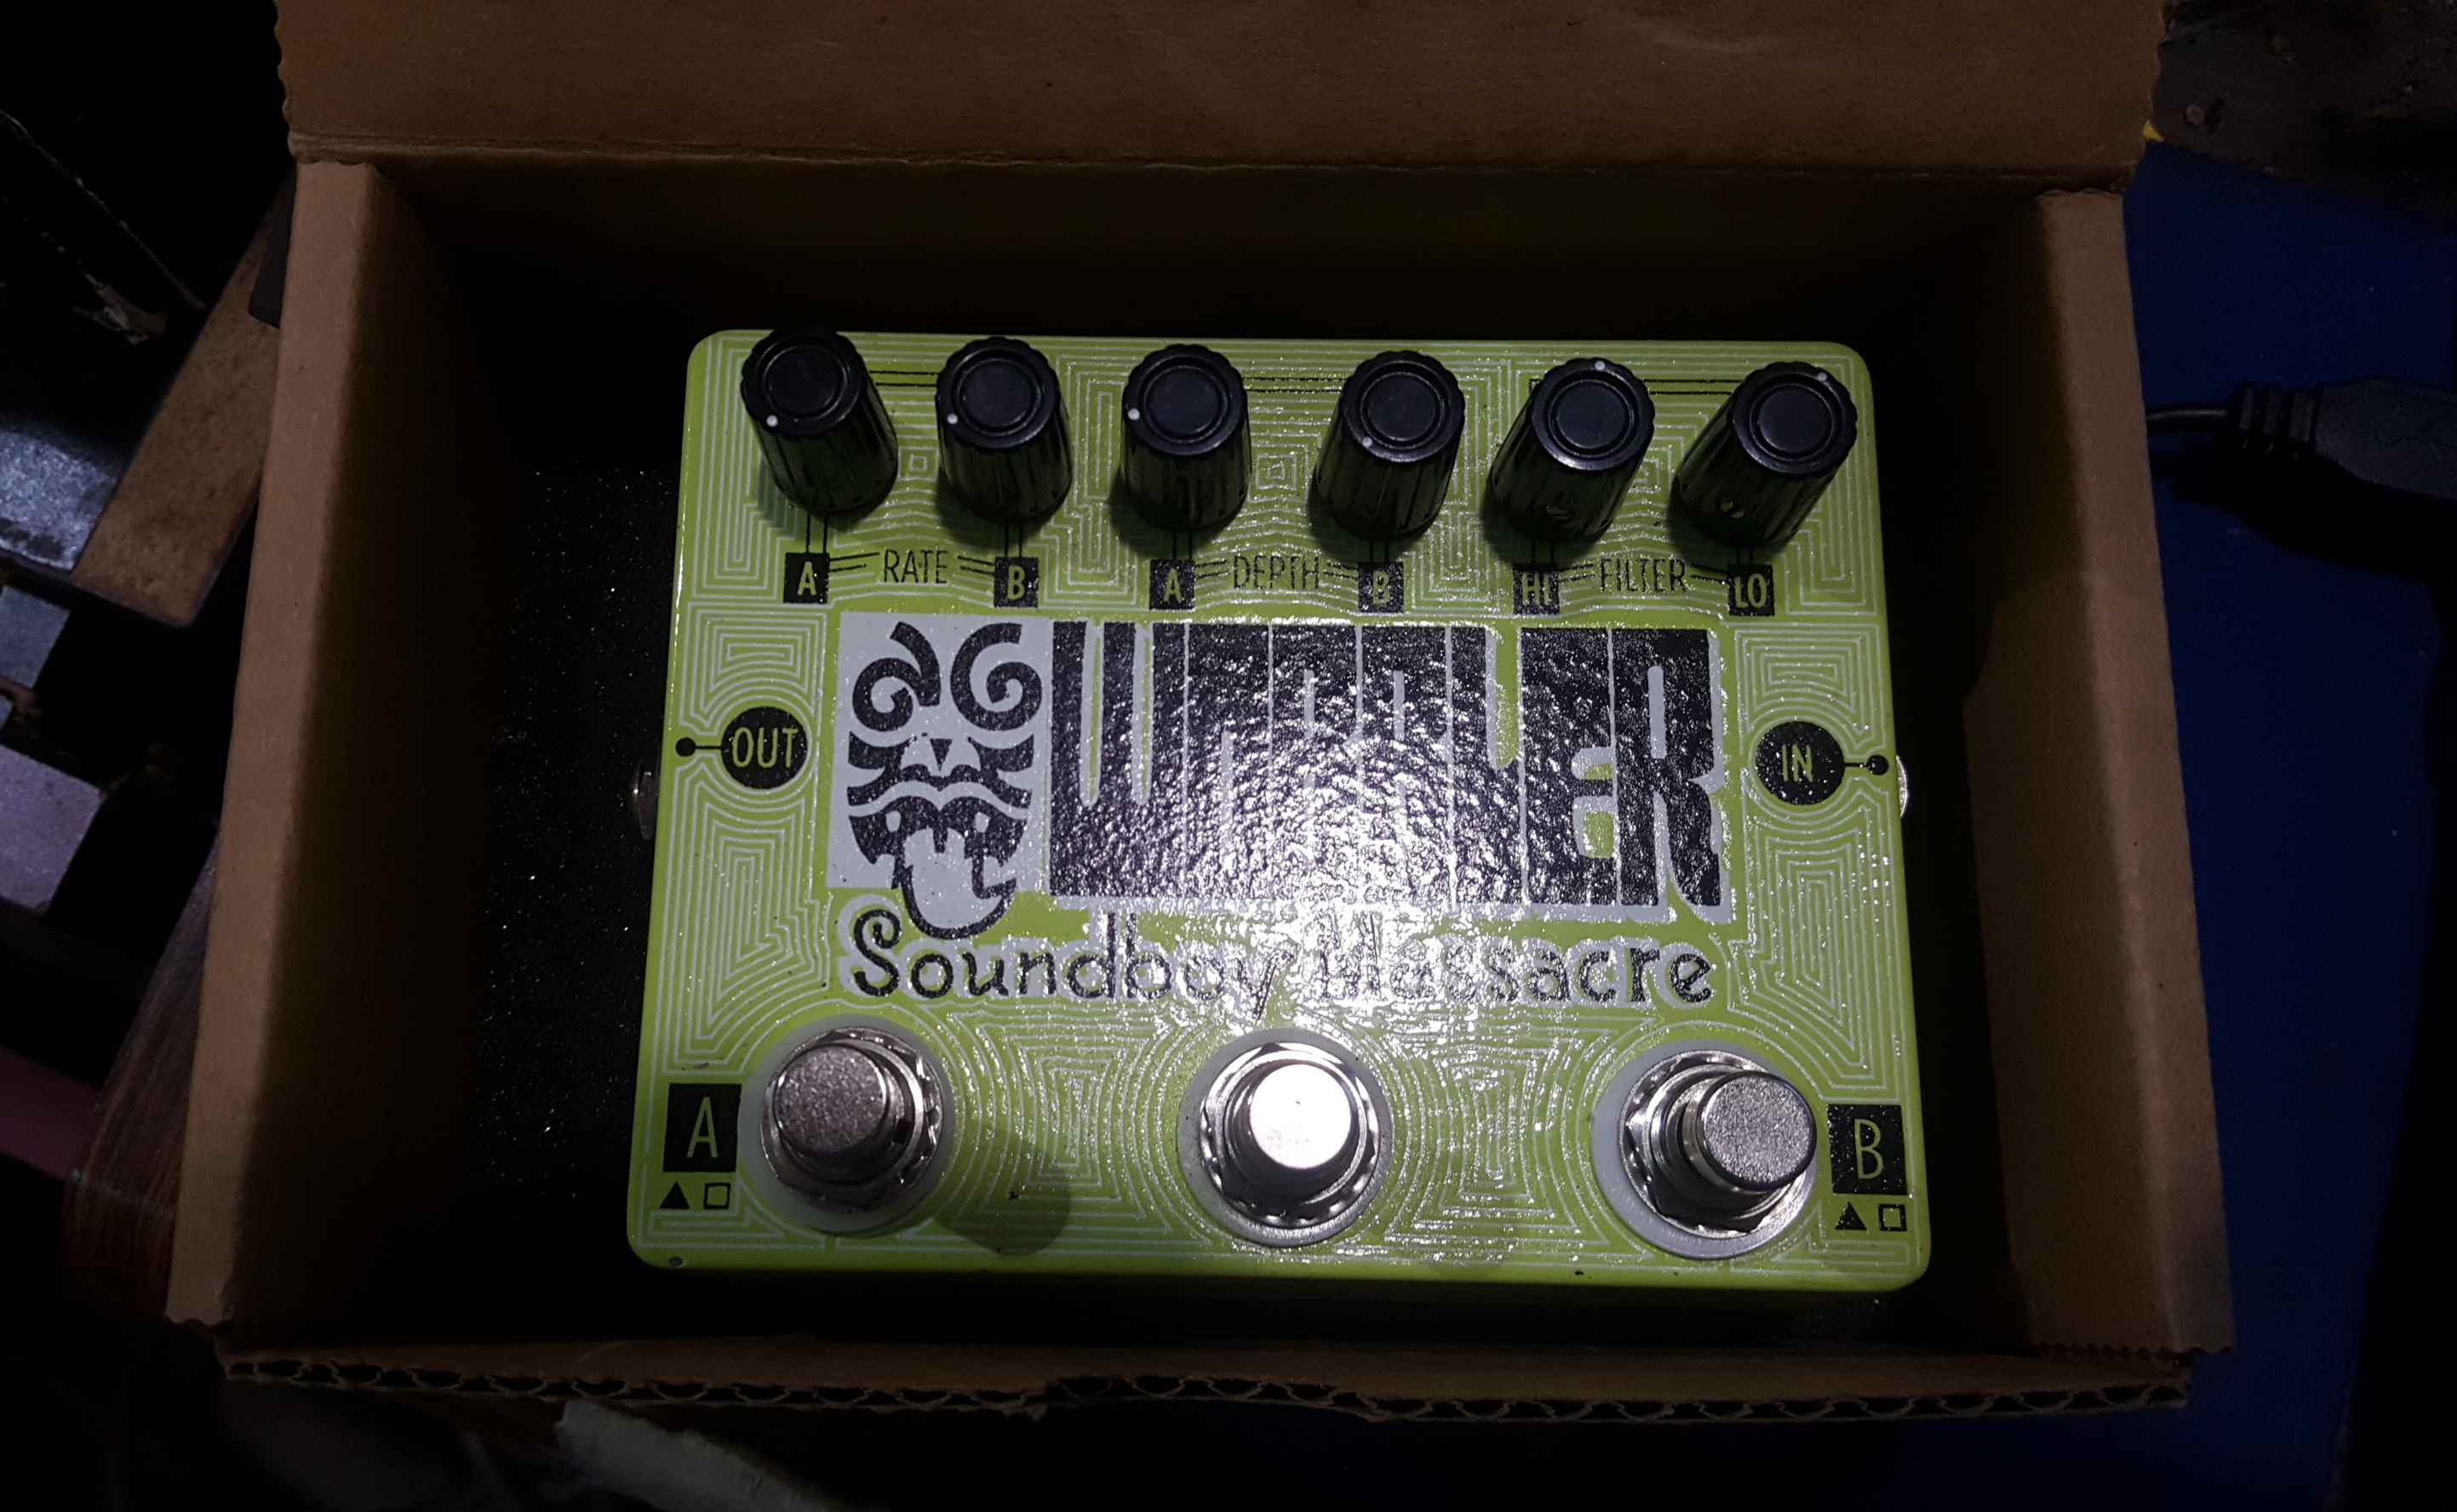 SOUNDBOY MASSACRE WOBBLER Dual-Tremolo Guitar Effects FX Pedal